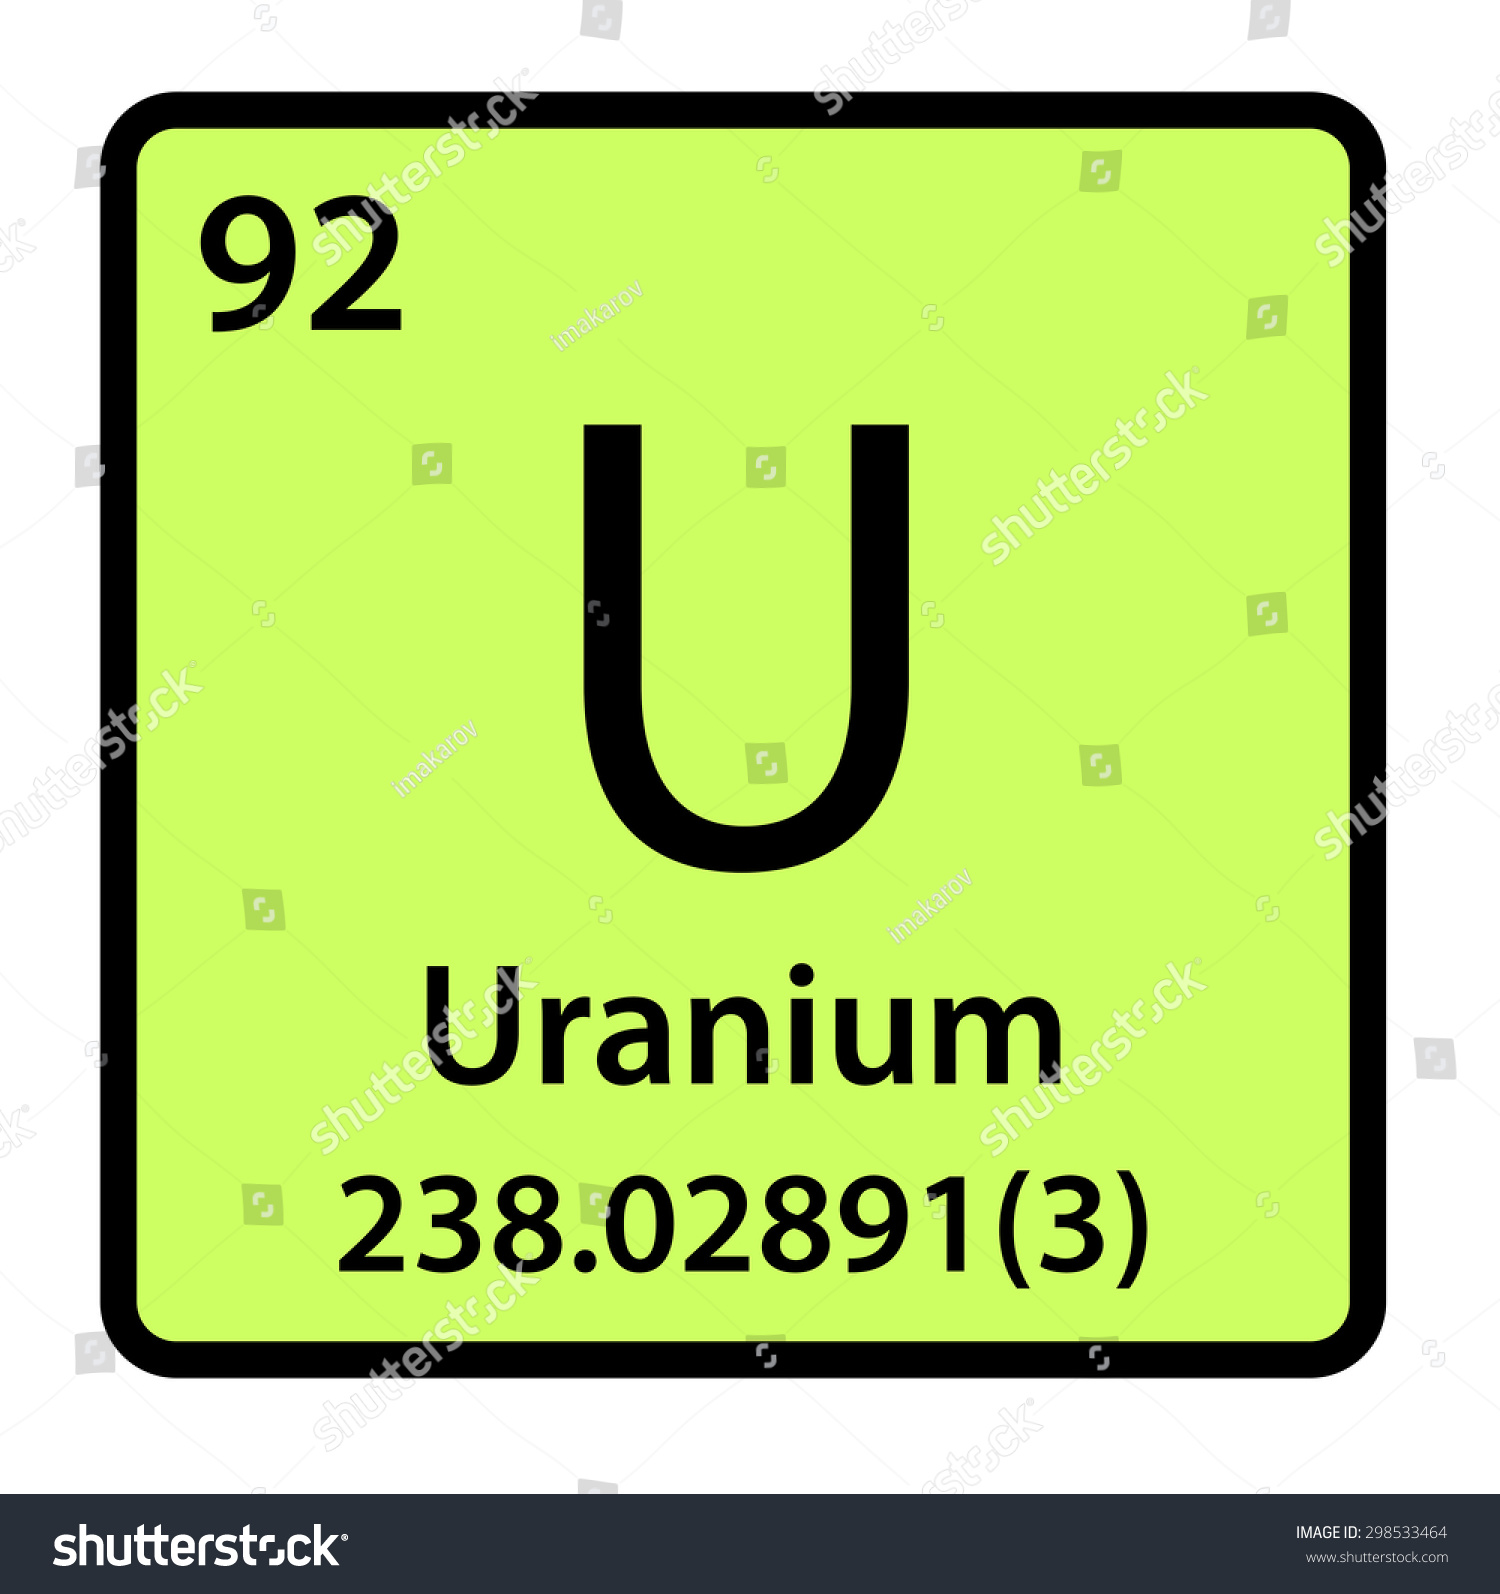 Element uranium of the periodic table stock photo 298533464 element uranium of the periodic table gamestrikefo Image collections